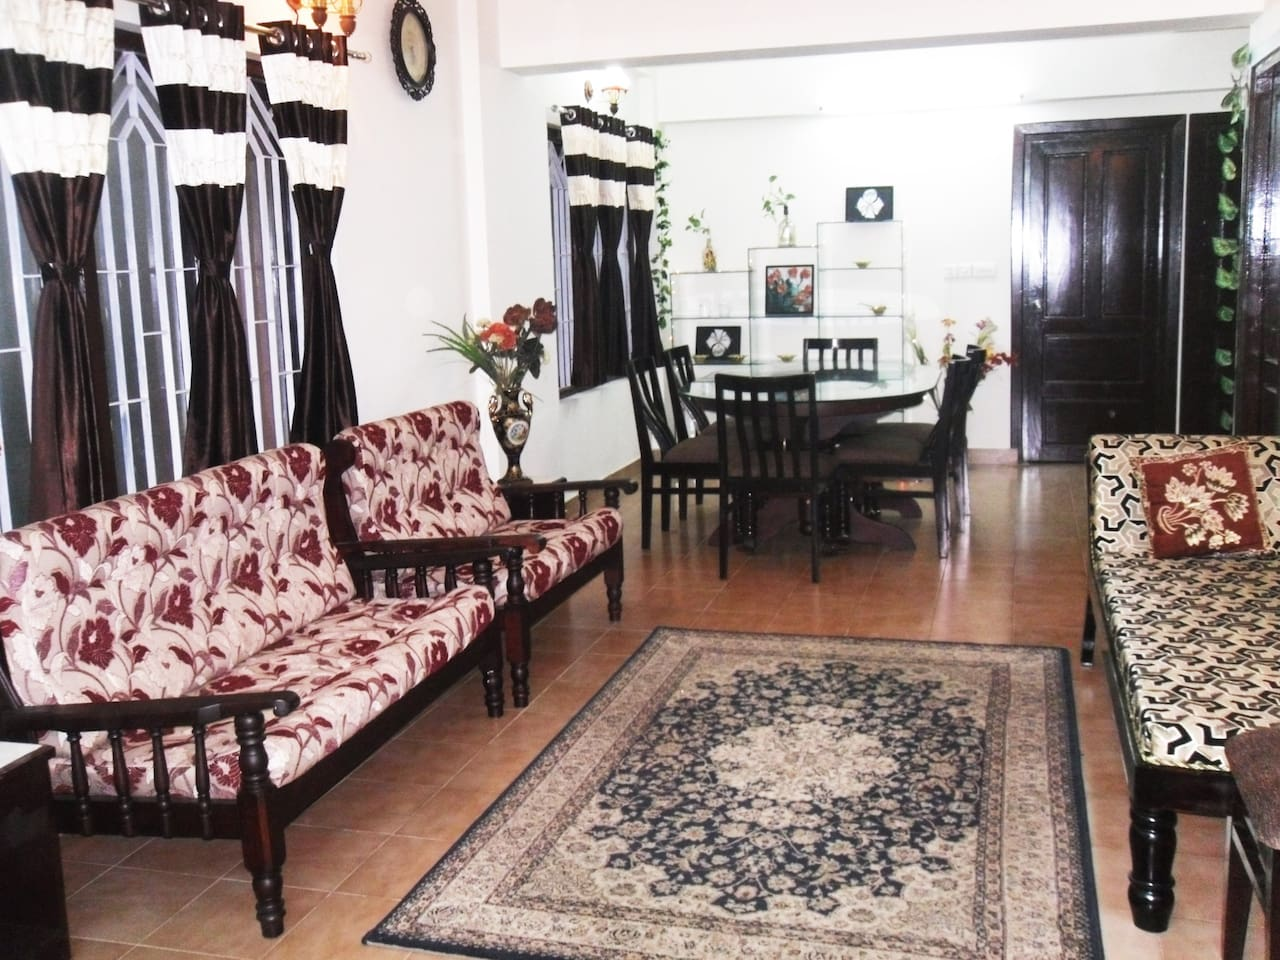 Your family living room . The most spacious one in trivandrum city